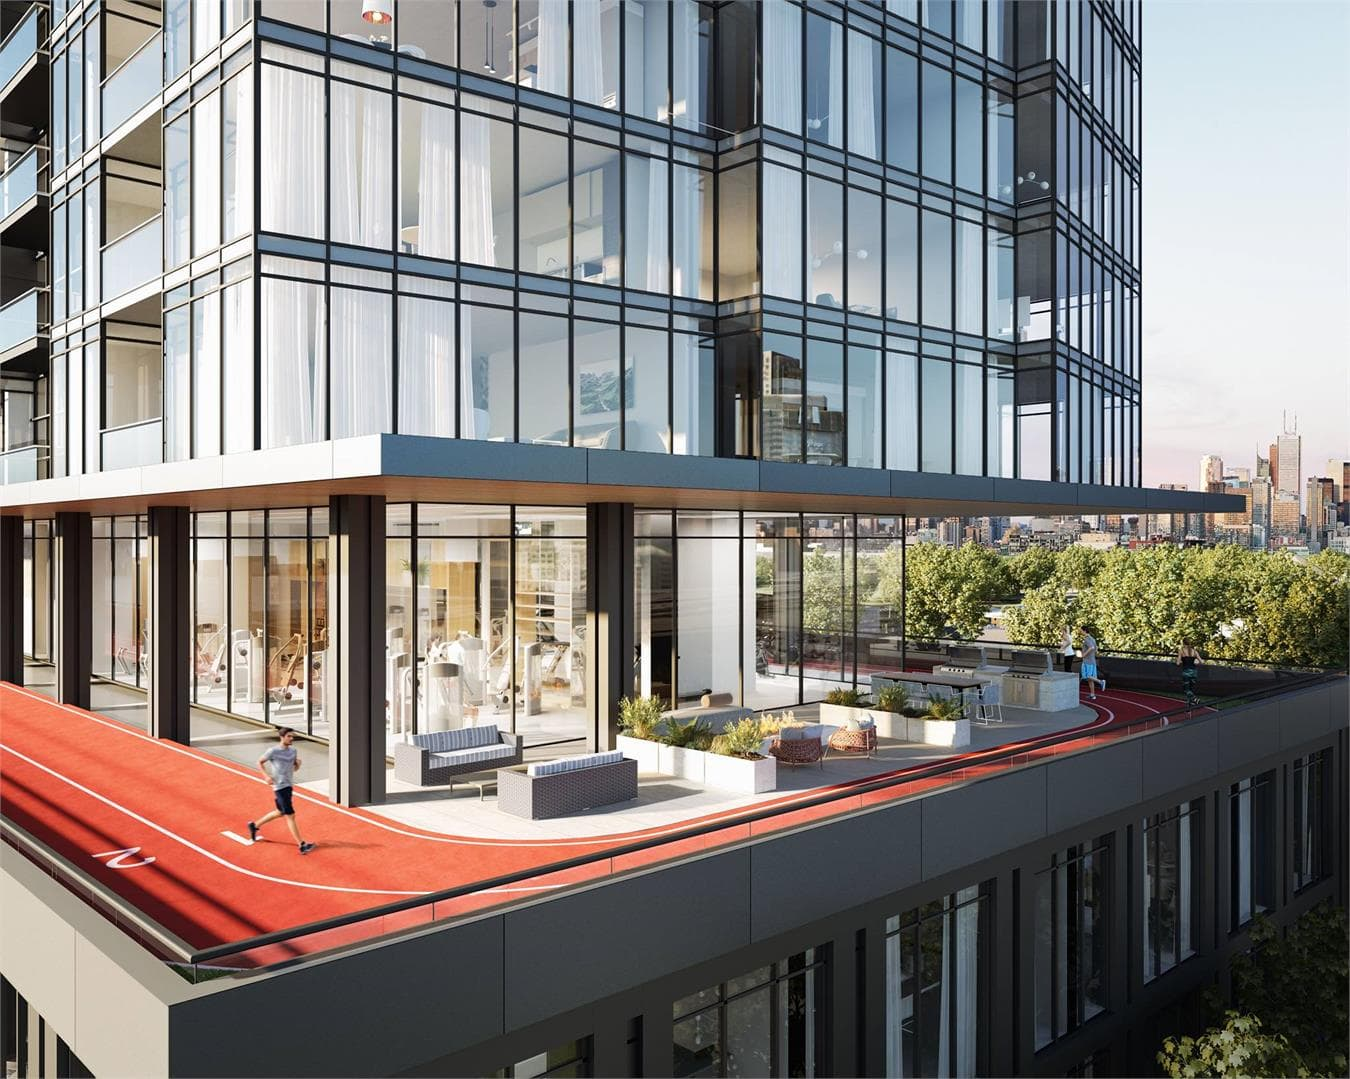 19 Western Battery Road,Toronto,Canada,New Condo Projects,Western Battery Road,1251